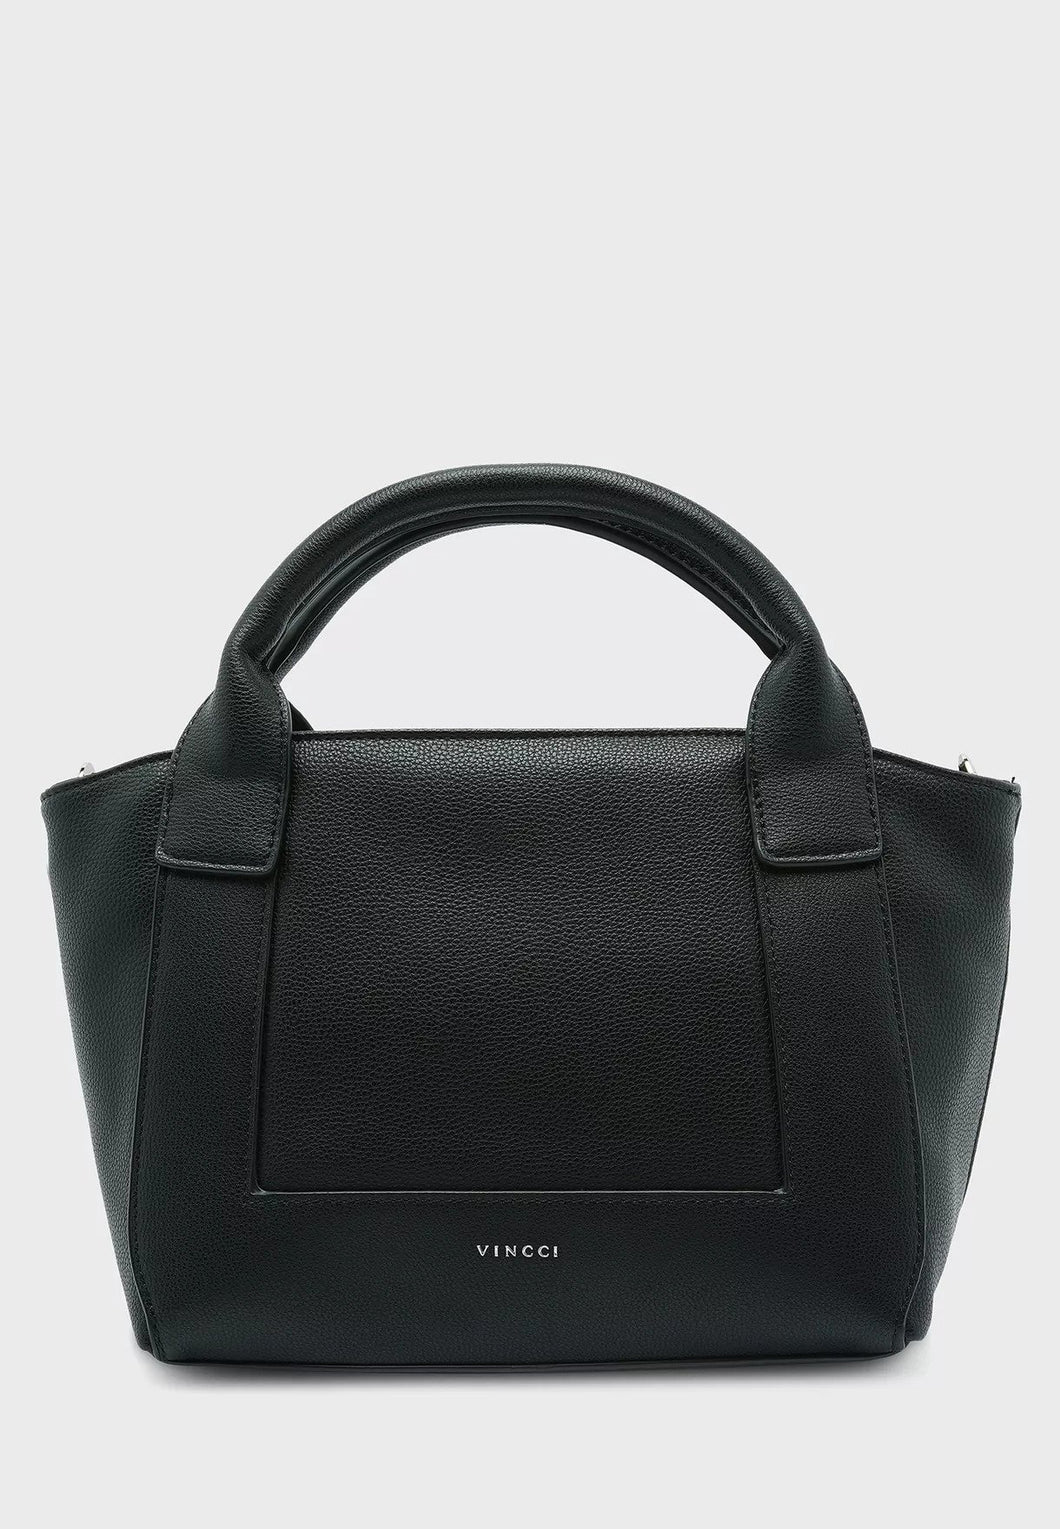 VINCCI Zip Closure Satchel